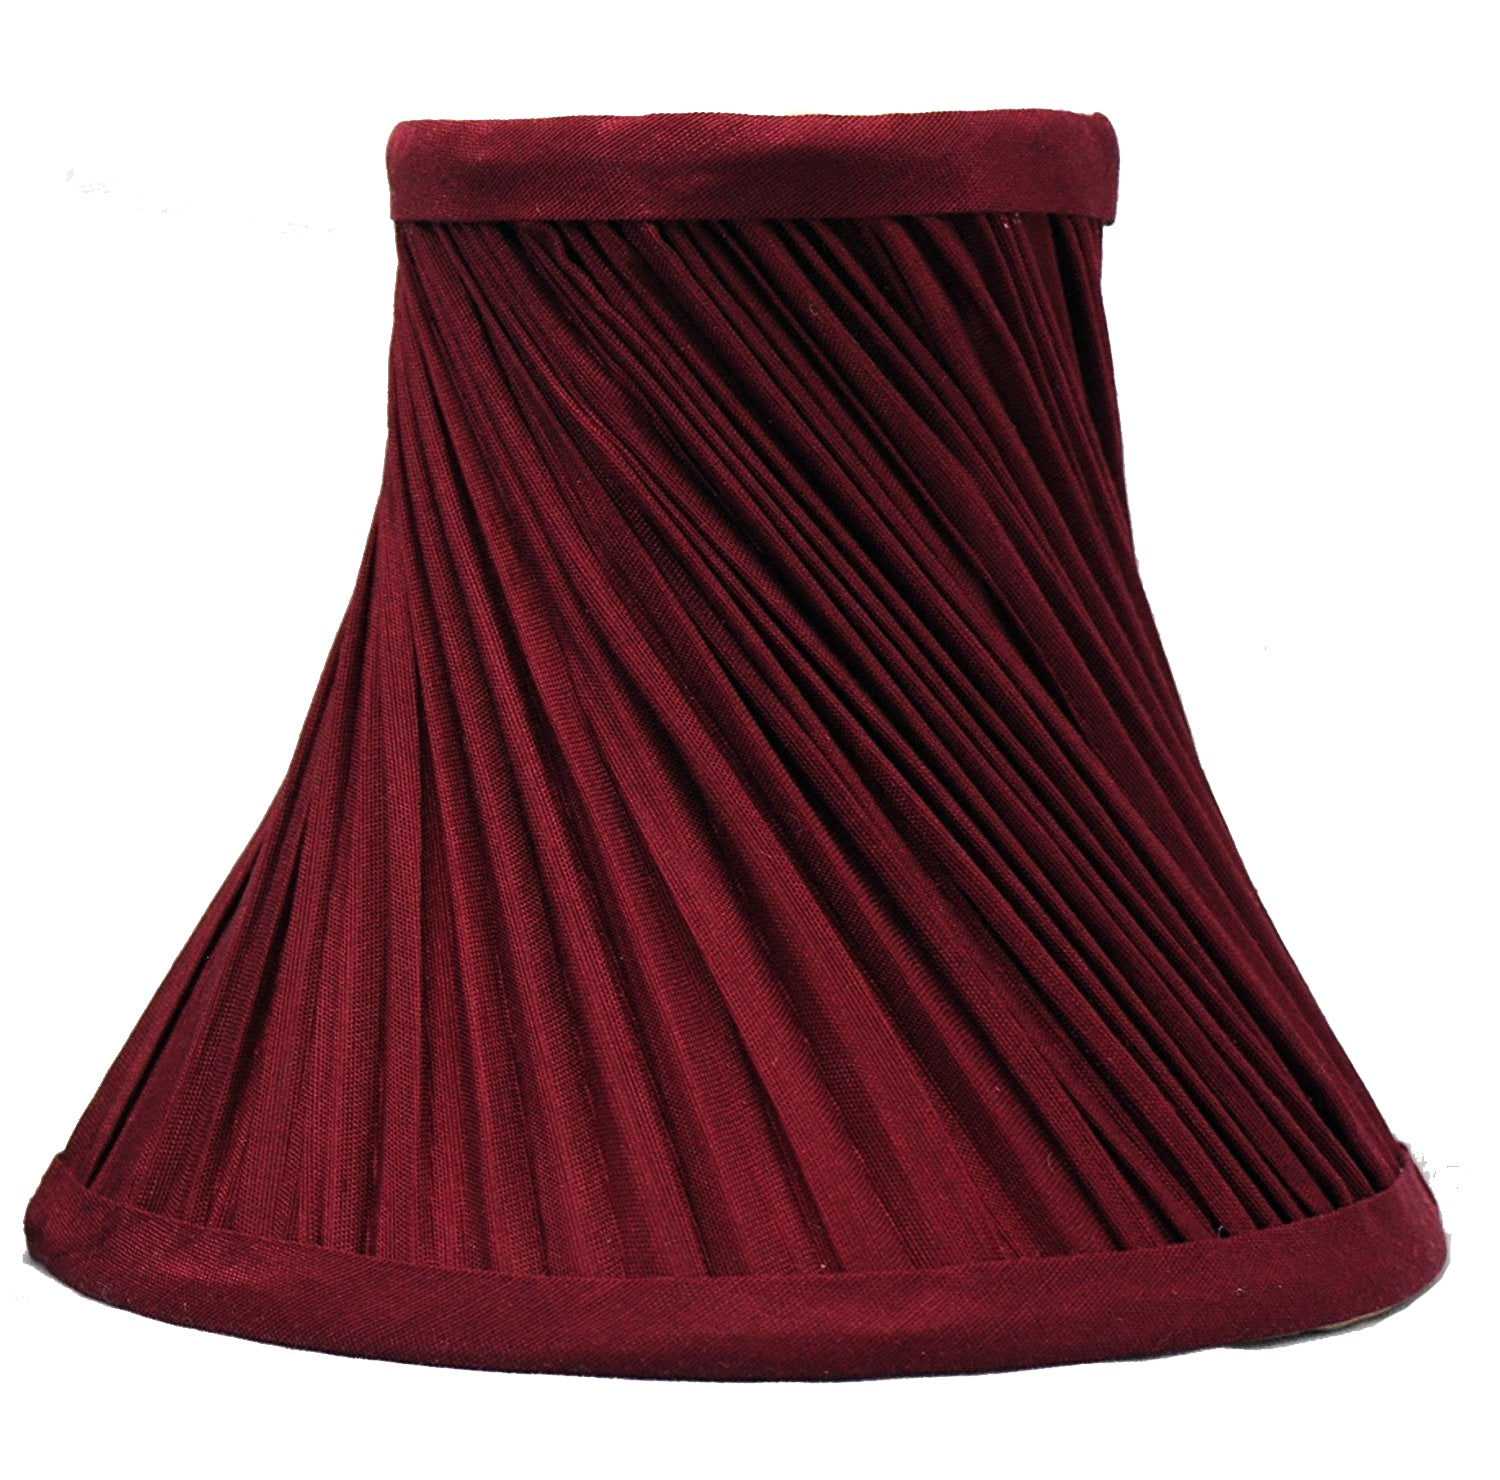 Swirl Pleated 6-inch Chandelier Lamp Shades - 4 Colors